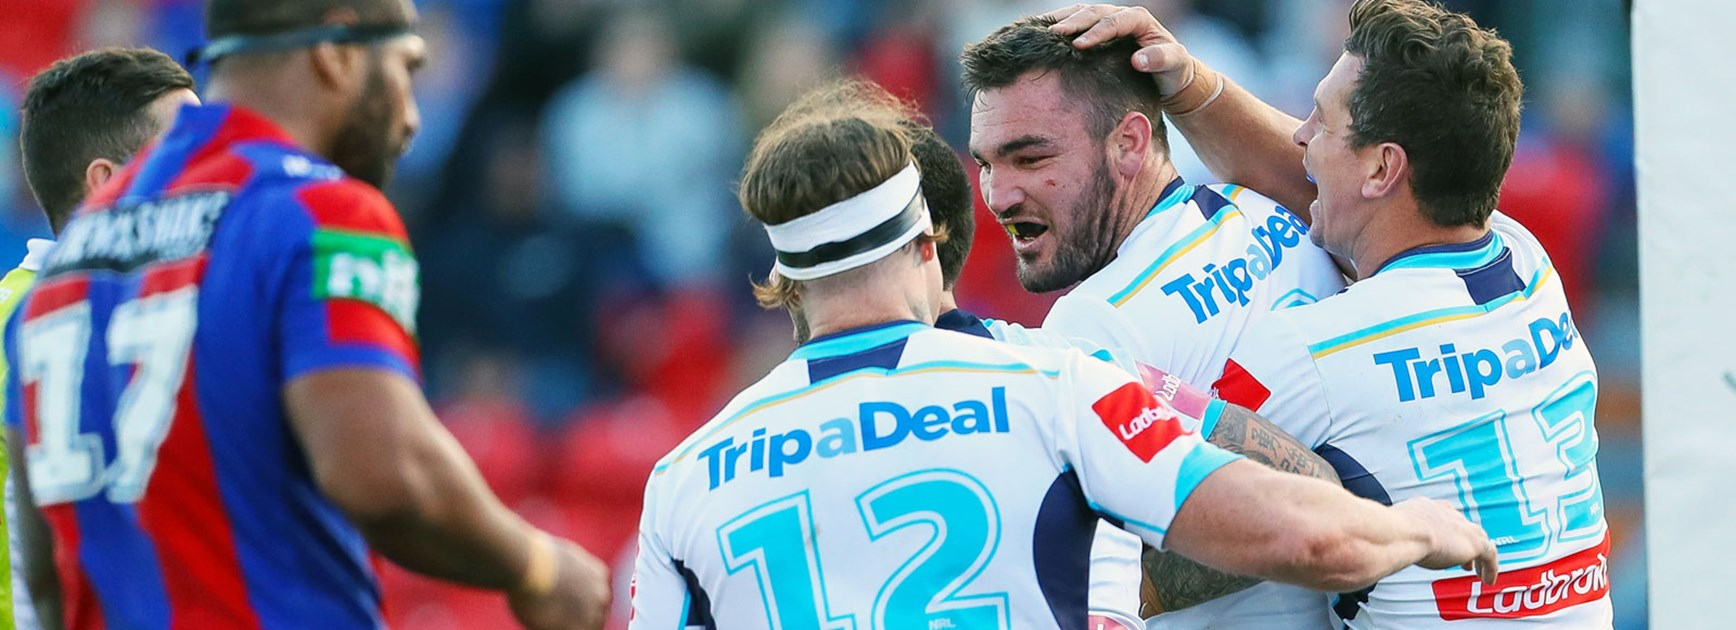 Titans prop Luke Douglas scored a try against the Knights in Round 24.